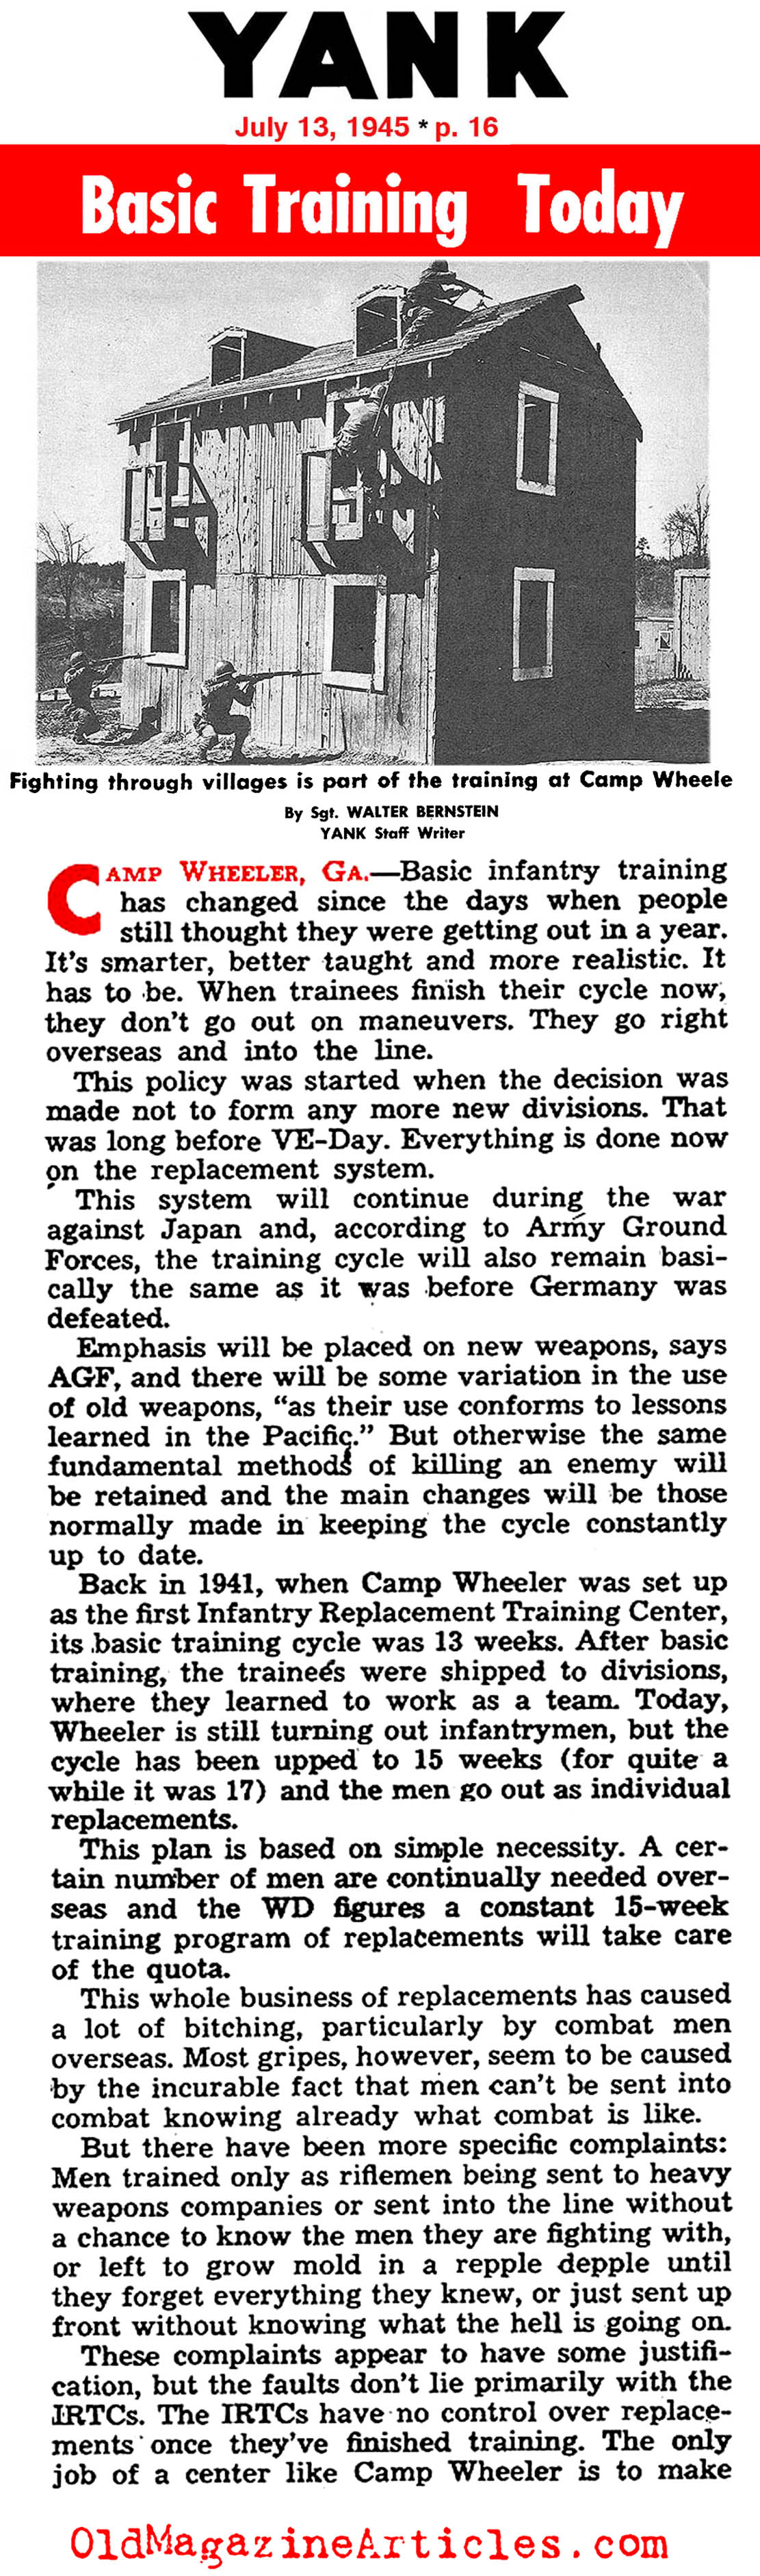 Basic Training in 1945: Camp Wheeler (Yank Magazine, 1945)